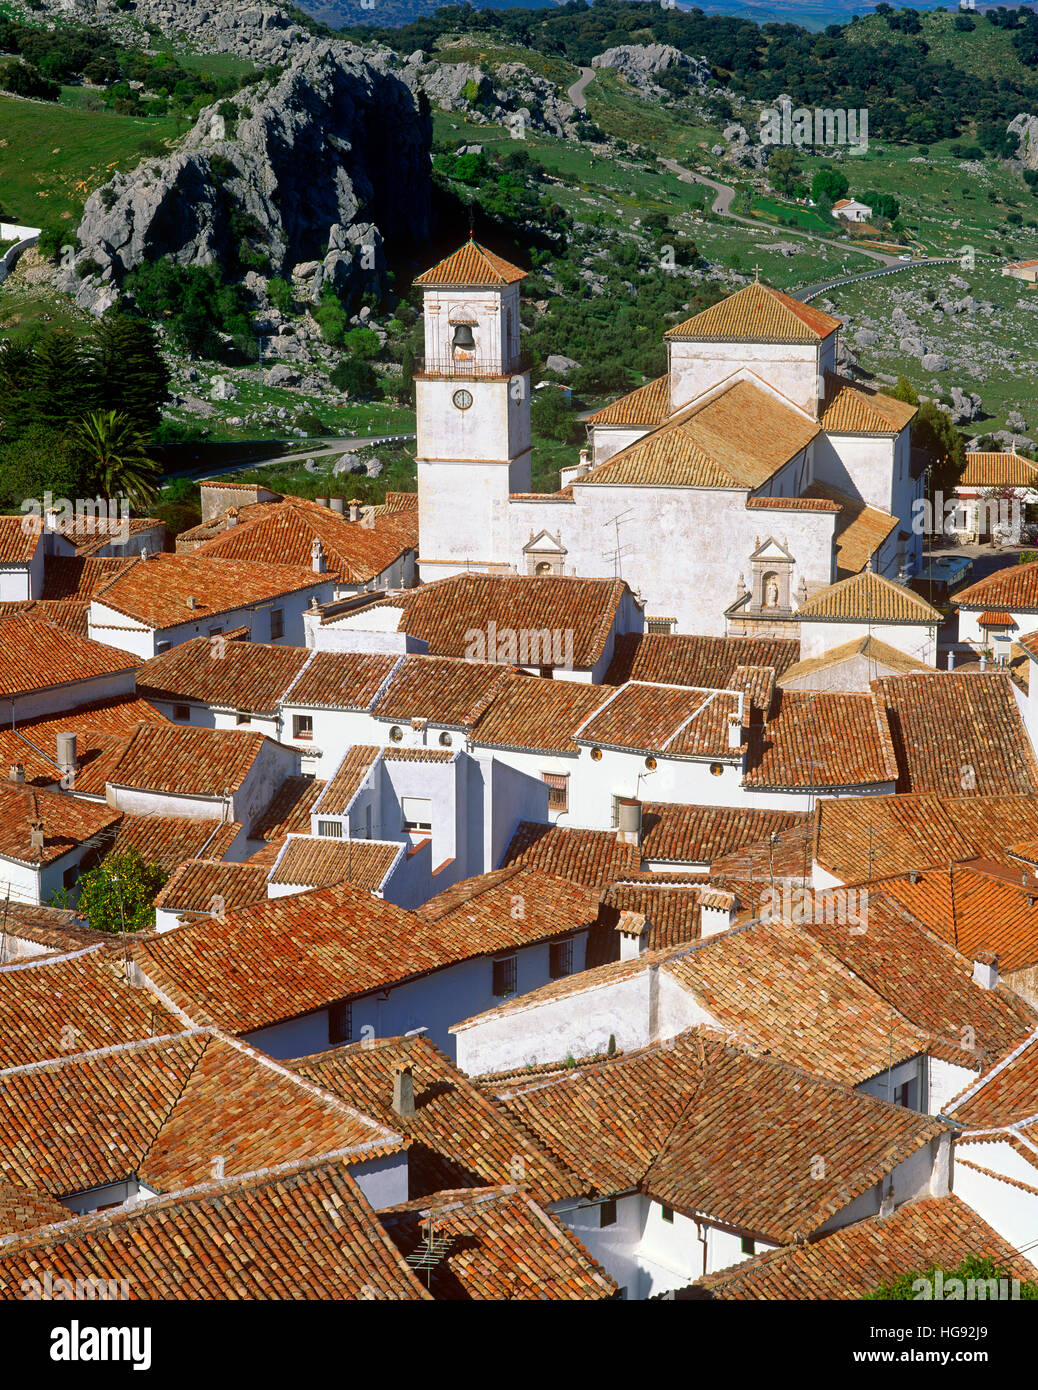 Red pantile roofs of Grazalema white village (Pueblos Blanco), Cadiz Province, Andalusia, Spain. - Stock Image